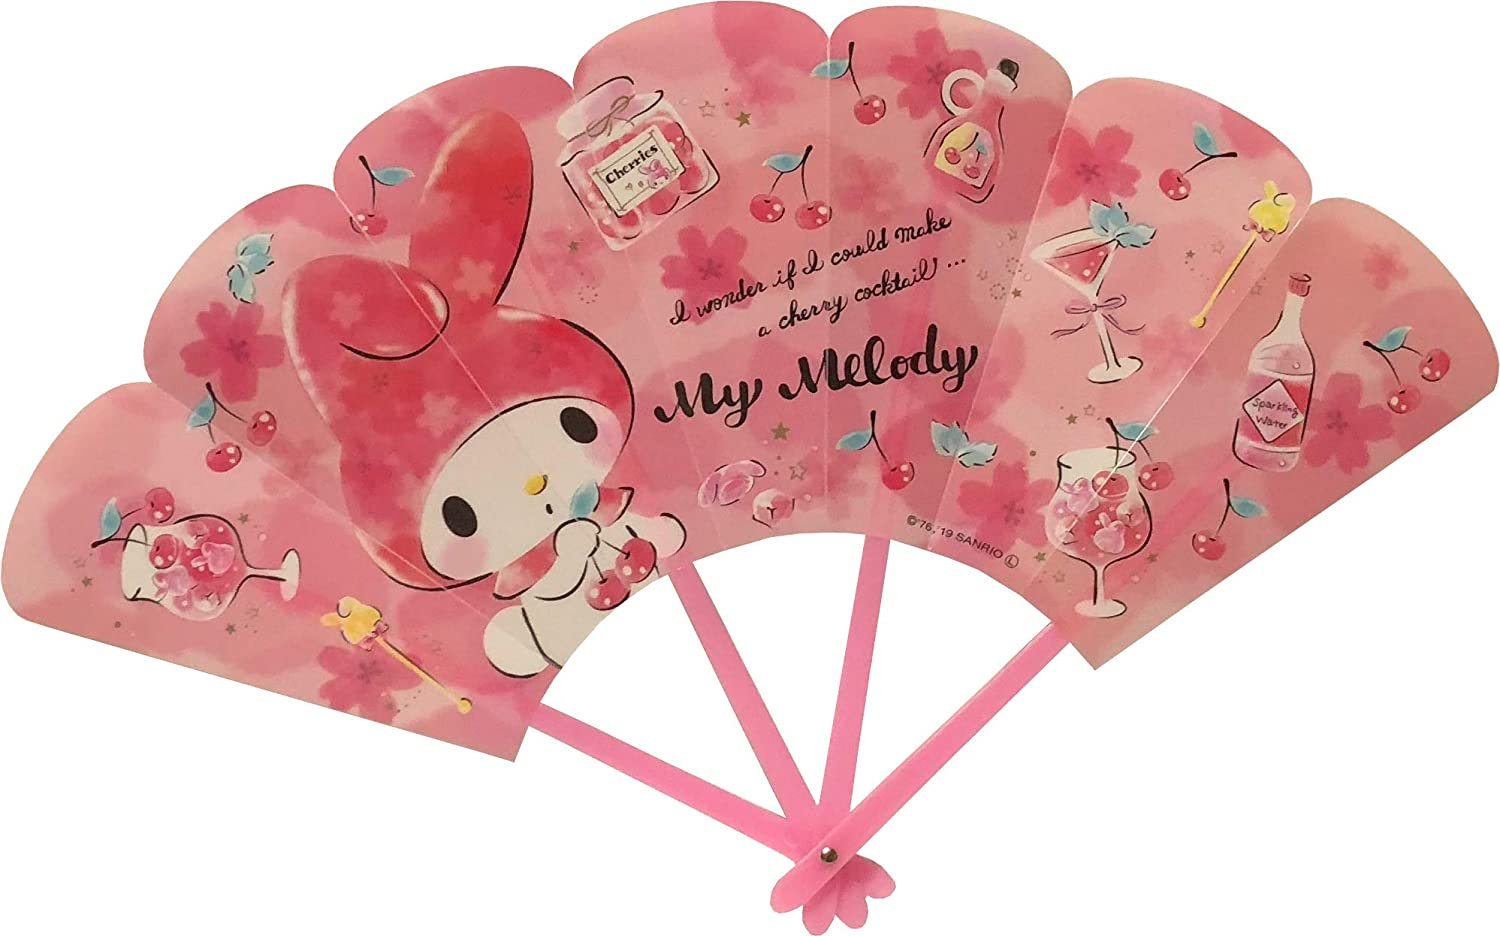 FRIEND Sanrio My Melody Decorative Folding Fan Strong in The Water Polypropylene (Cherry)